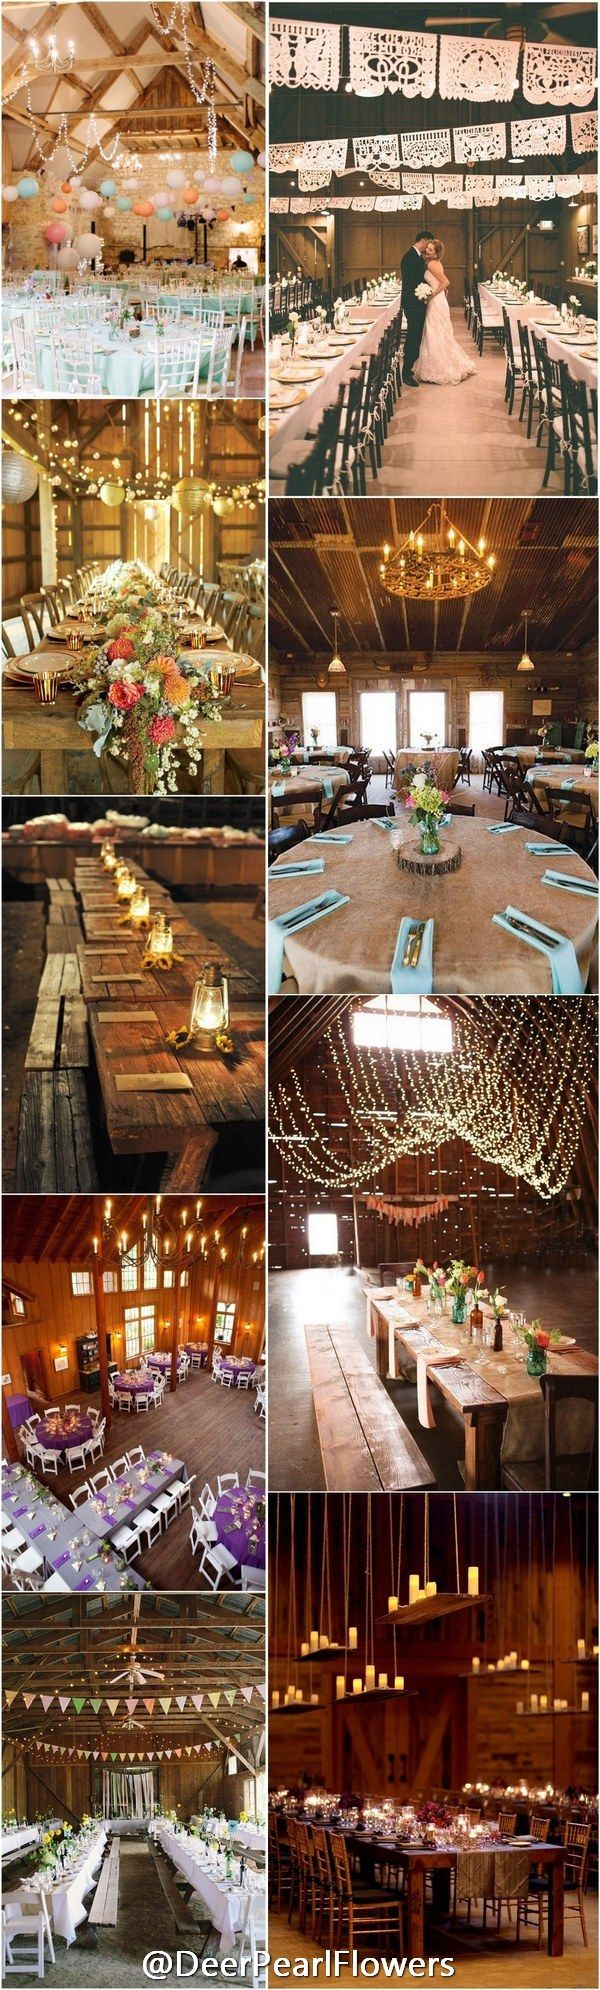 best Decor Getting Hitched images on Pinterest Marriage